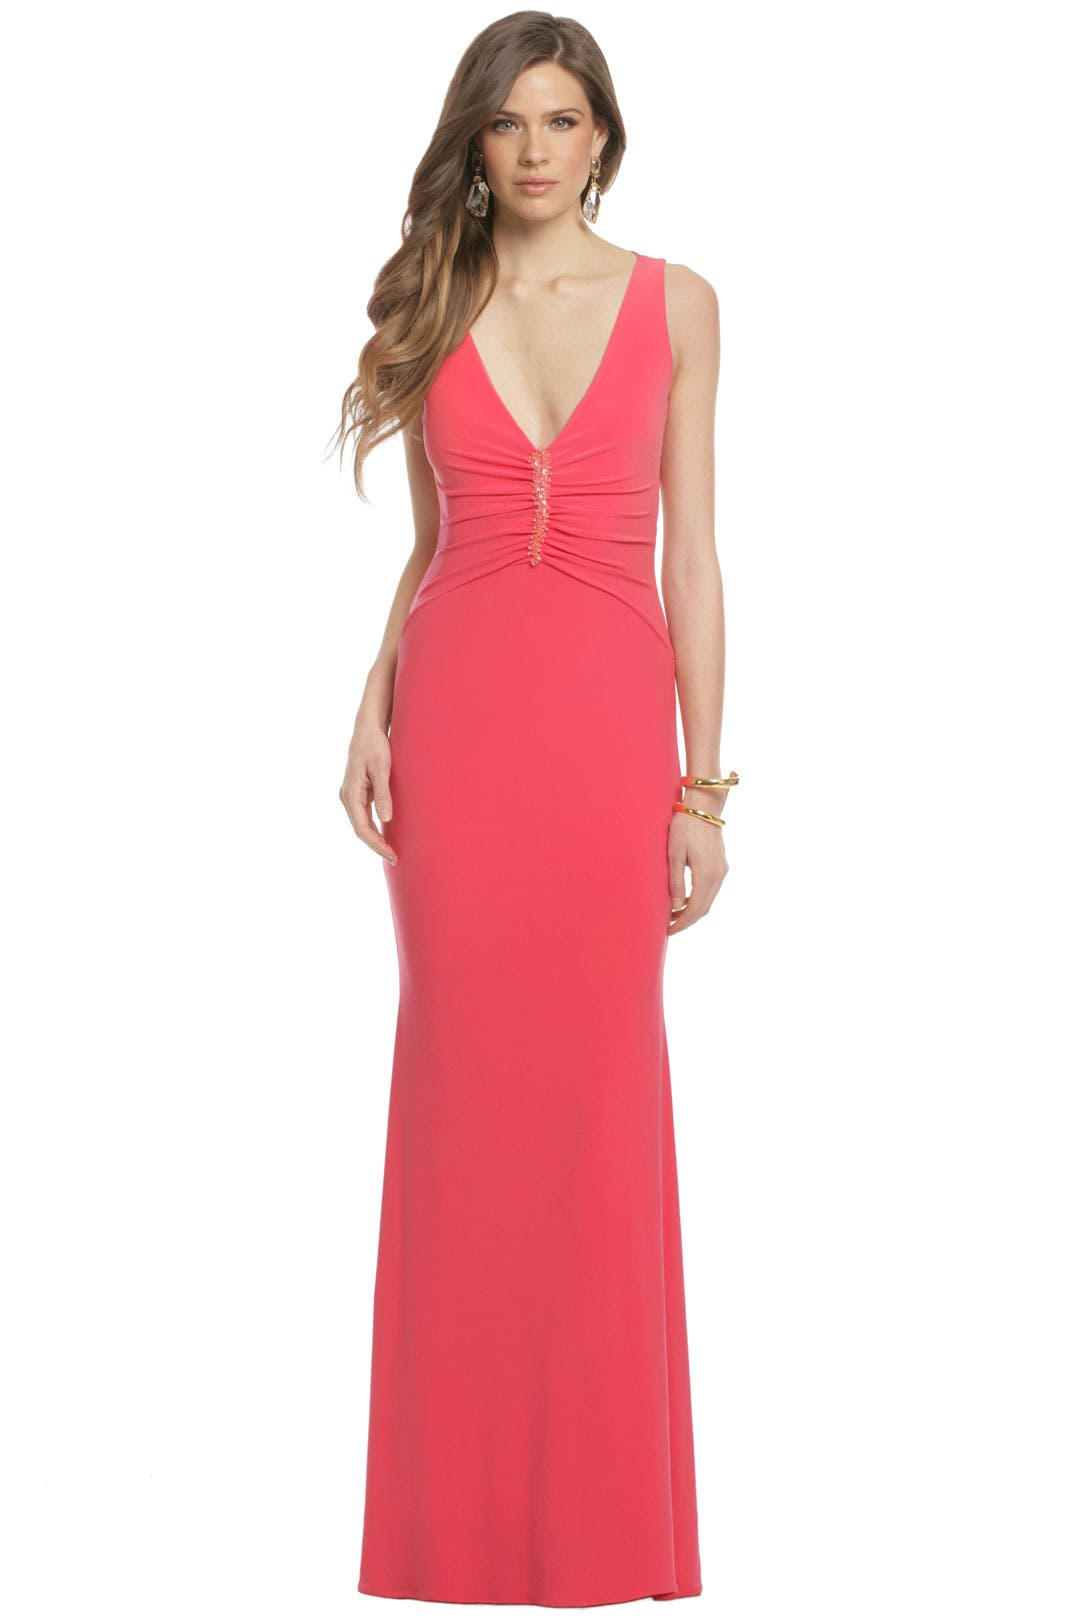 Isla Coralina Gown by Mark & James by Badgley Mischka